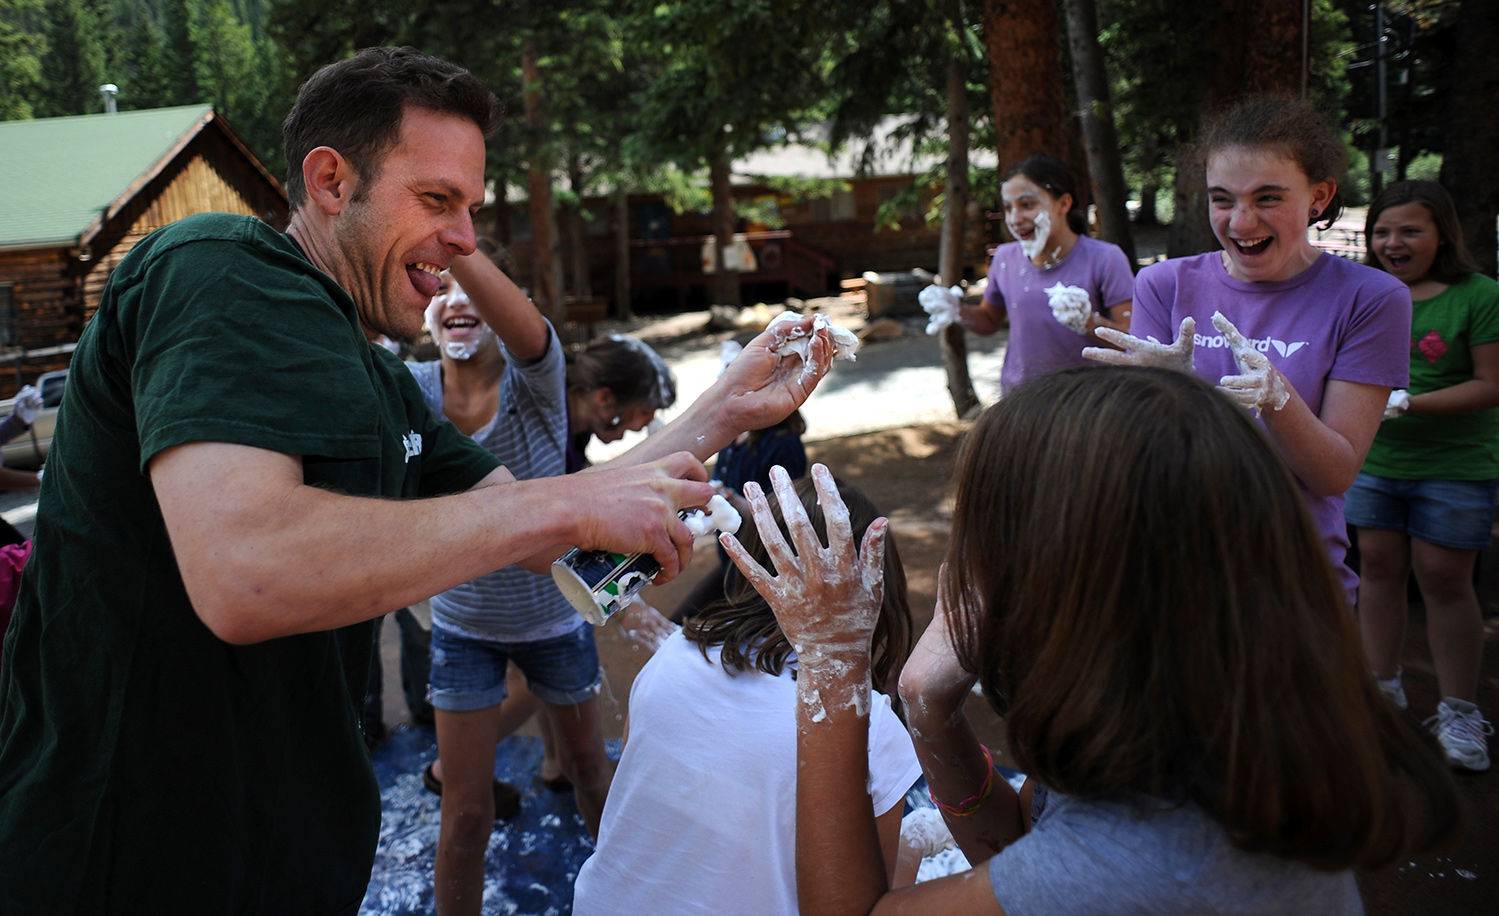 A shaving cream fight at Camp Shwayder, one of the oldest Jewish summer camps in the United States. RJ Sangosti/The Denver Post via Getty Images.